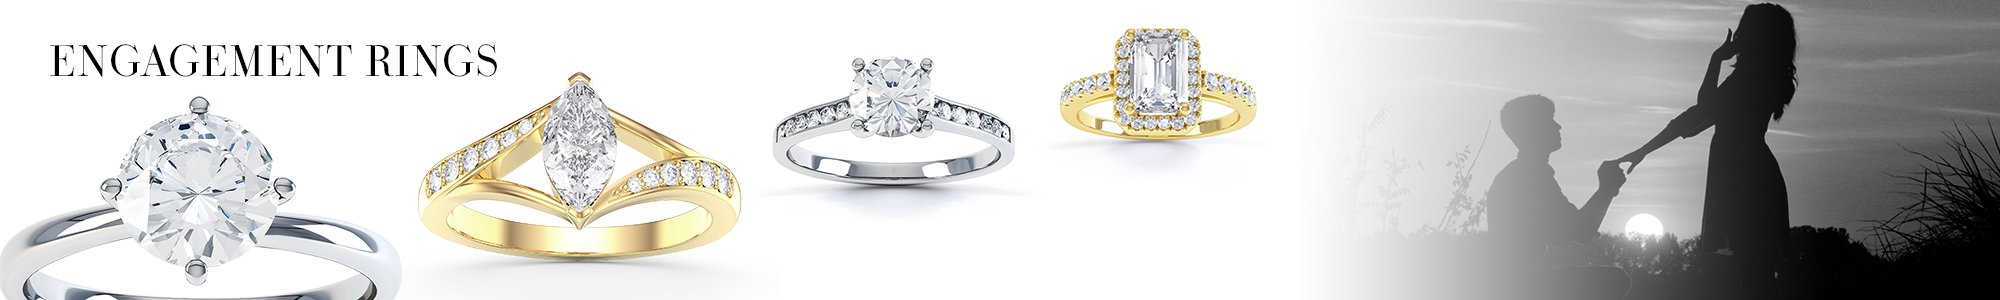 Engagement Rings - From White Sapphire set in Silver to Diamonds set in 18K Gold or Platinum.